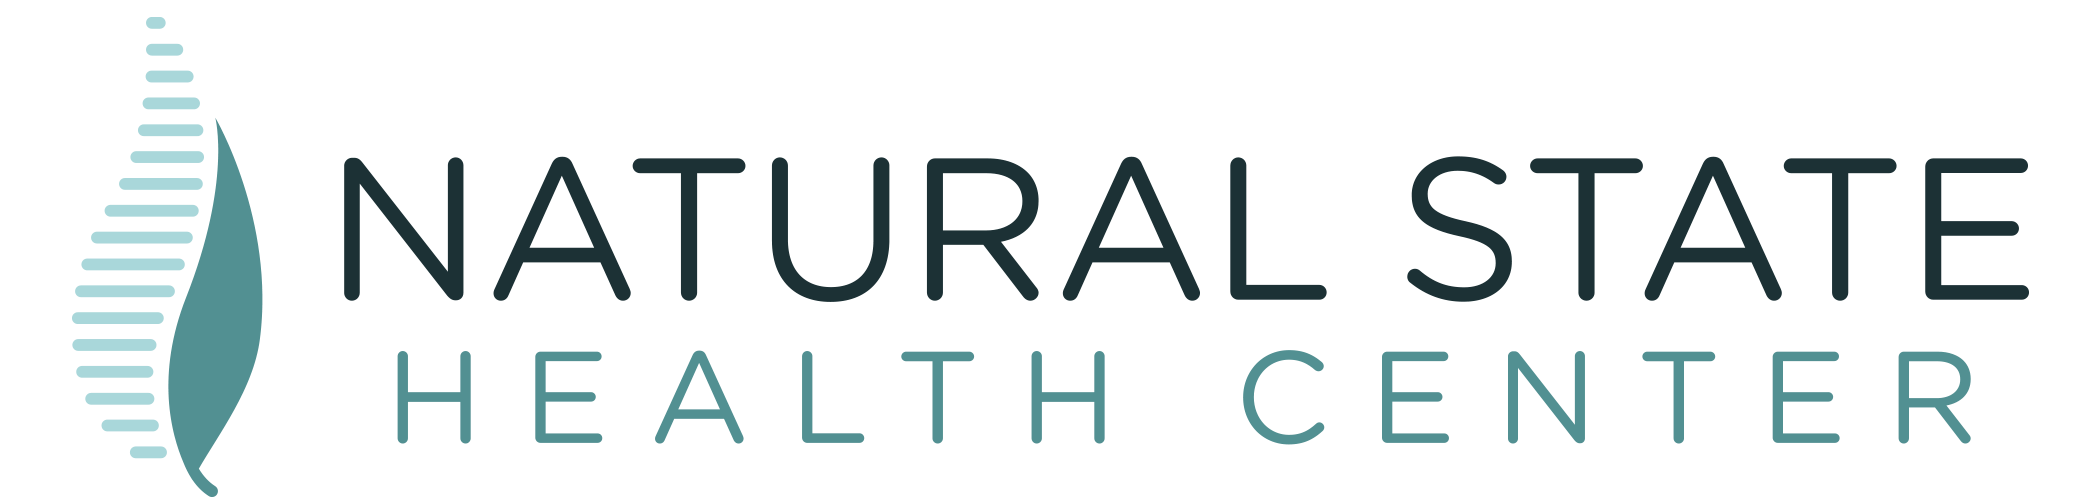 Natural State Health Center logo